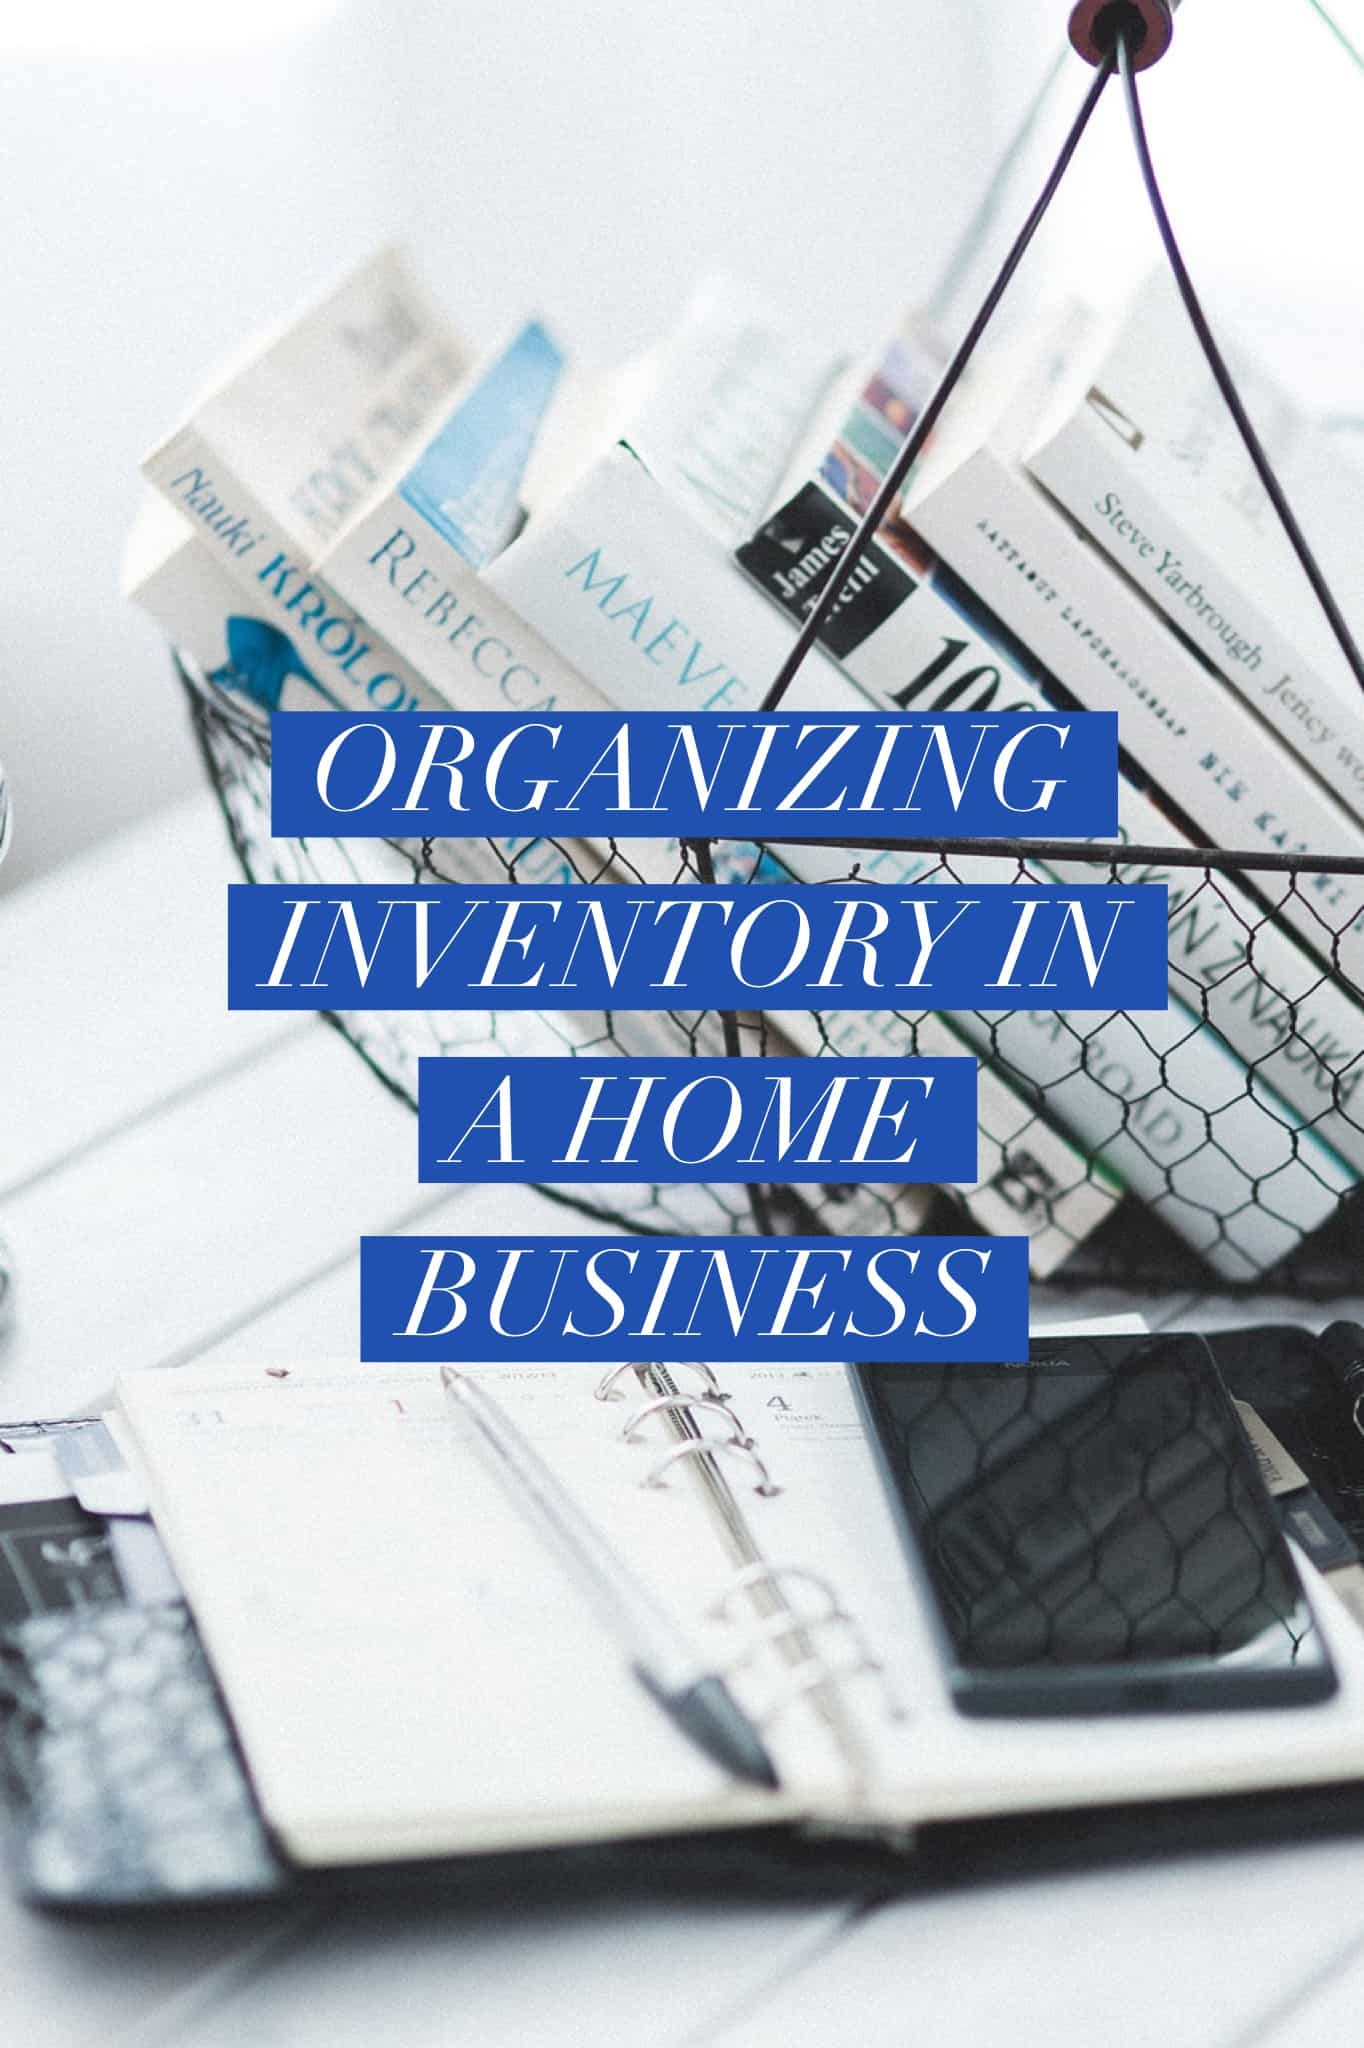 Organizing Inventory in a Home Business Title